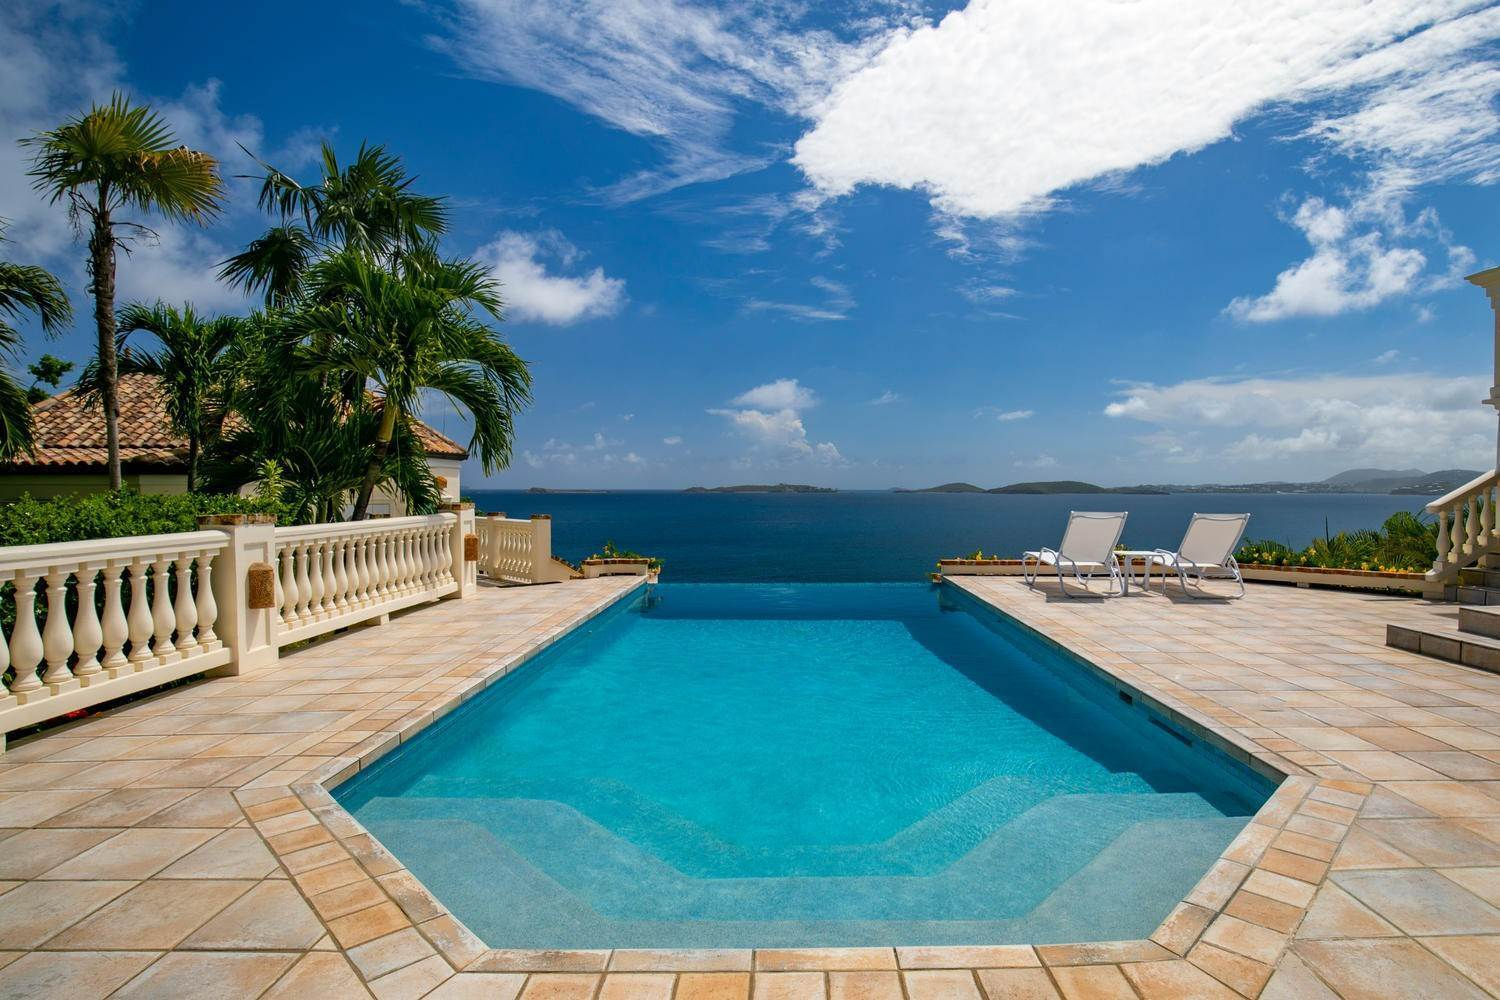 6. Single Family Home per Vendita alle ore 9-4 Con. Contant Cruz Bay St John, Virgin Islands,00830 Isole Vergini Americane